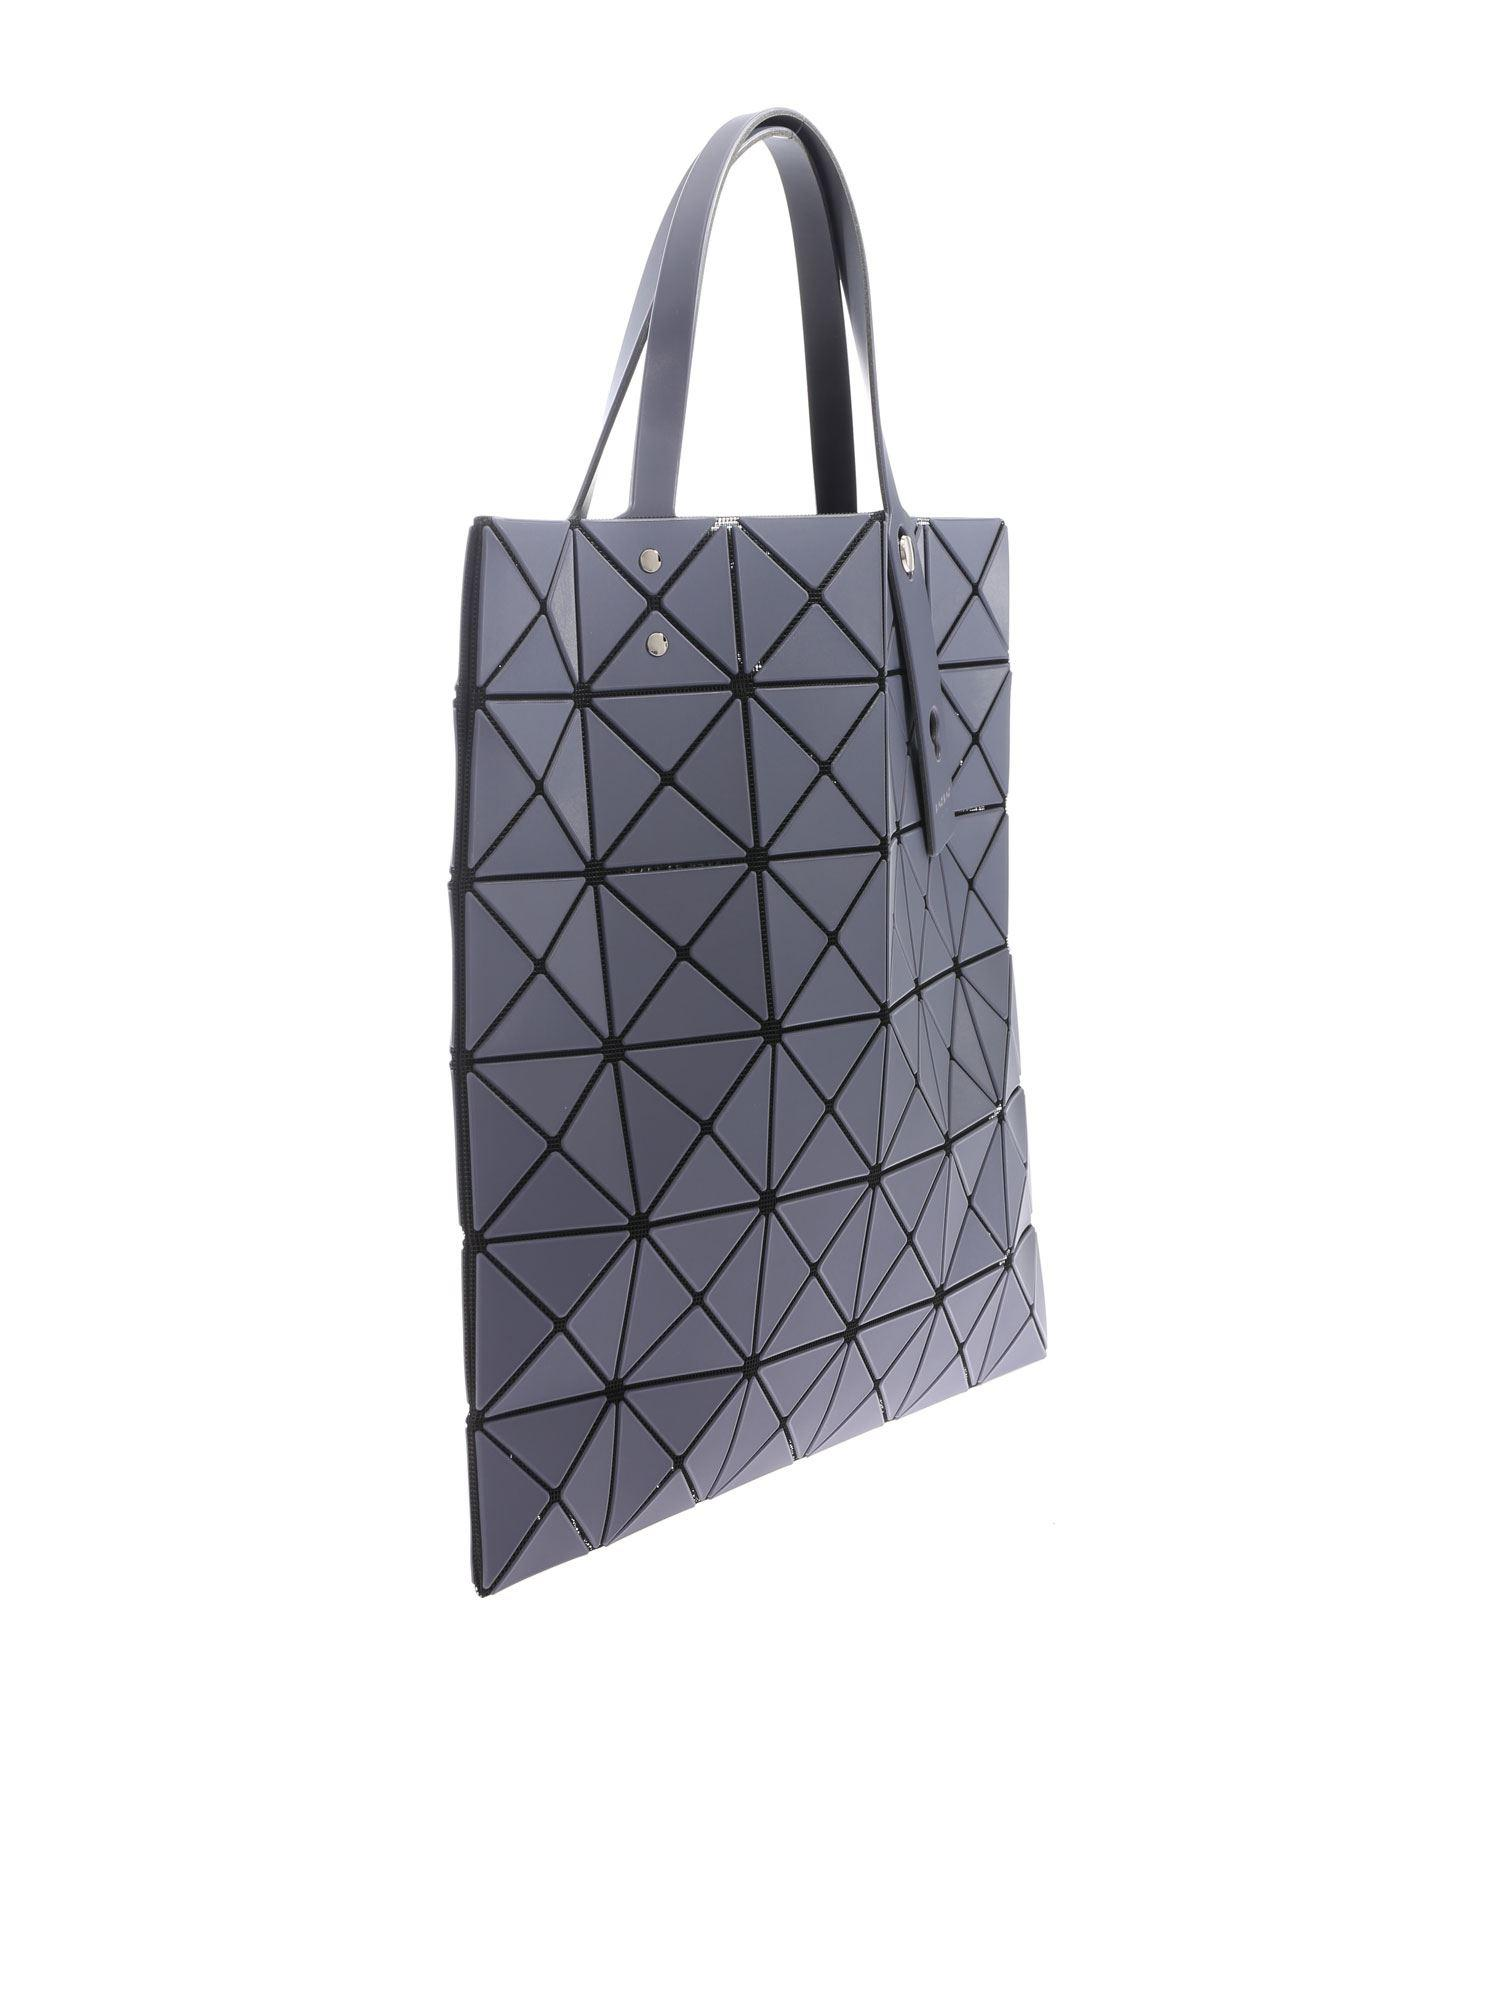 Bao Bao Issey Miyake - Lucent Frost Gray Bag With Triangle Pattern - Lyst.  View fullscreen 444f9e6863c65